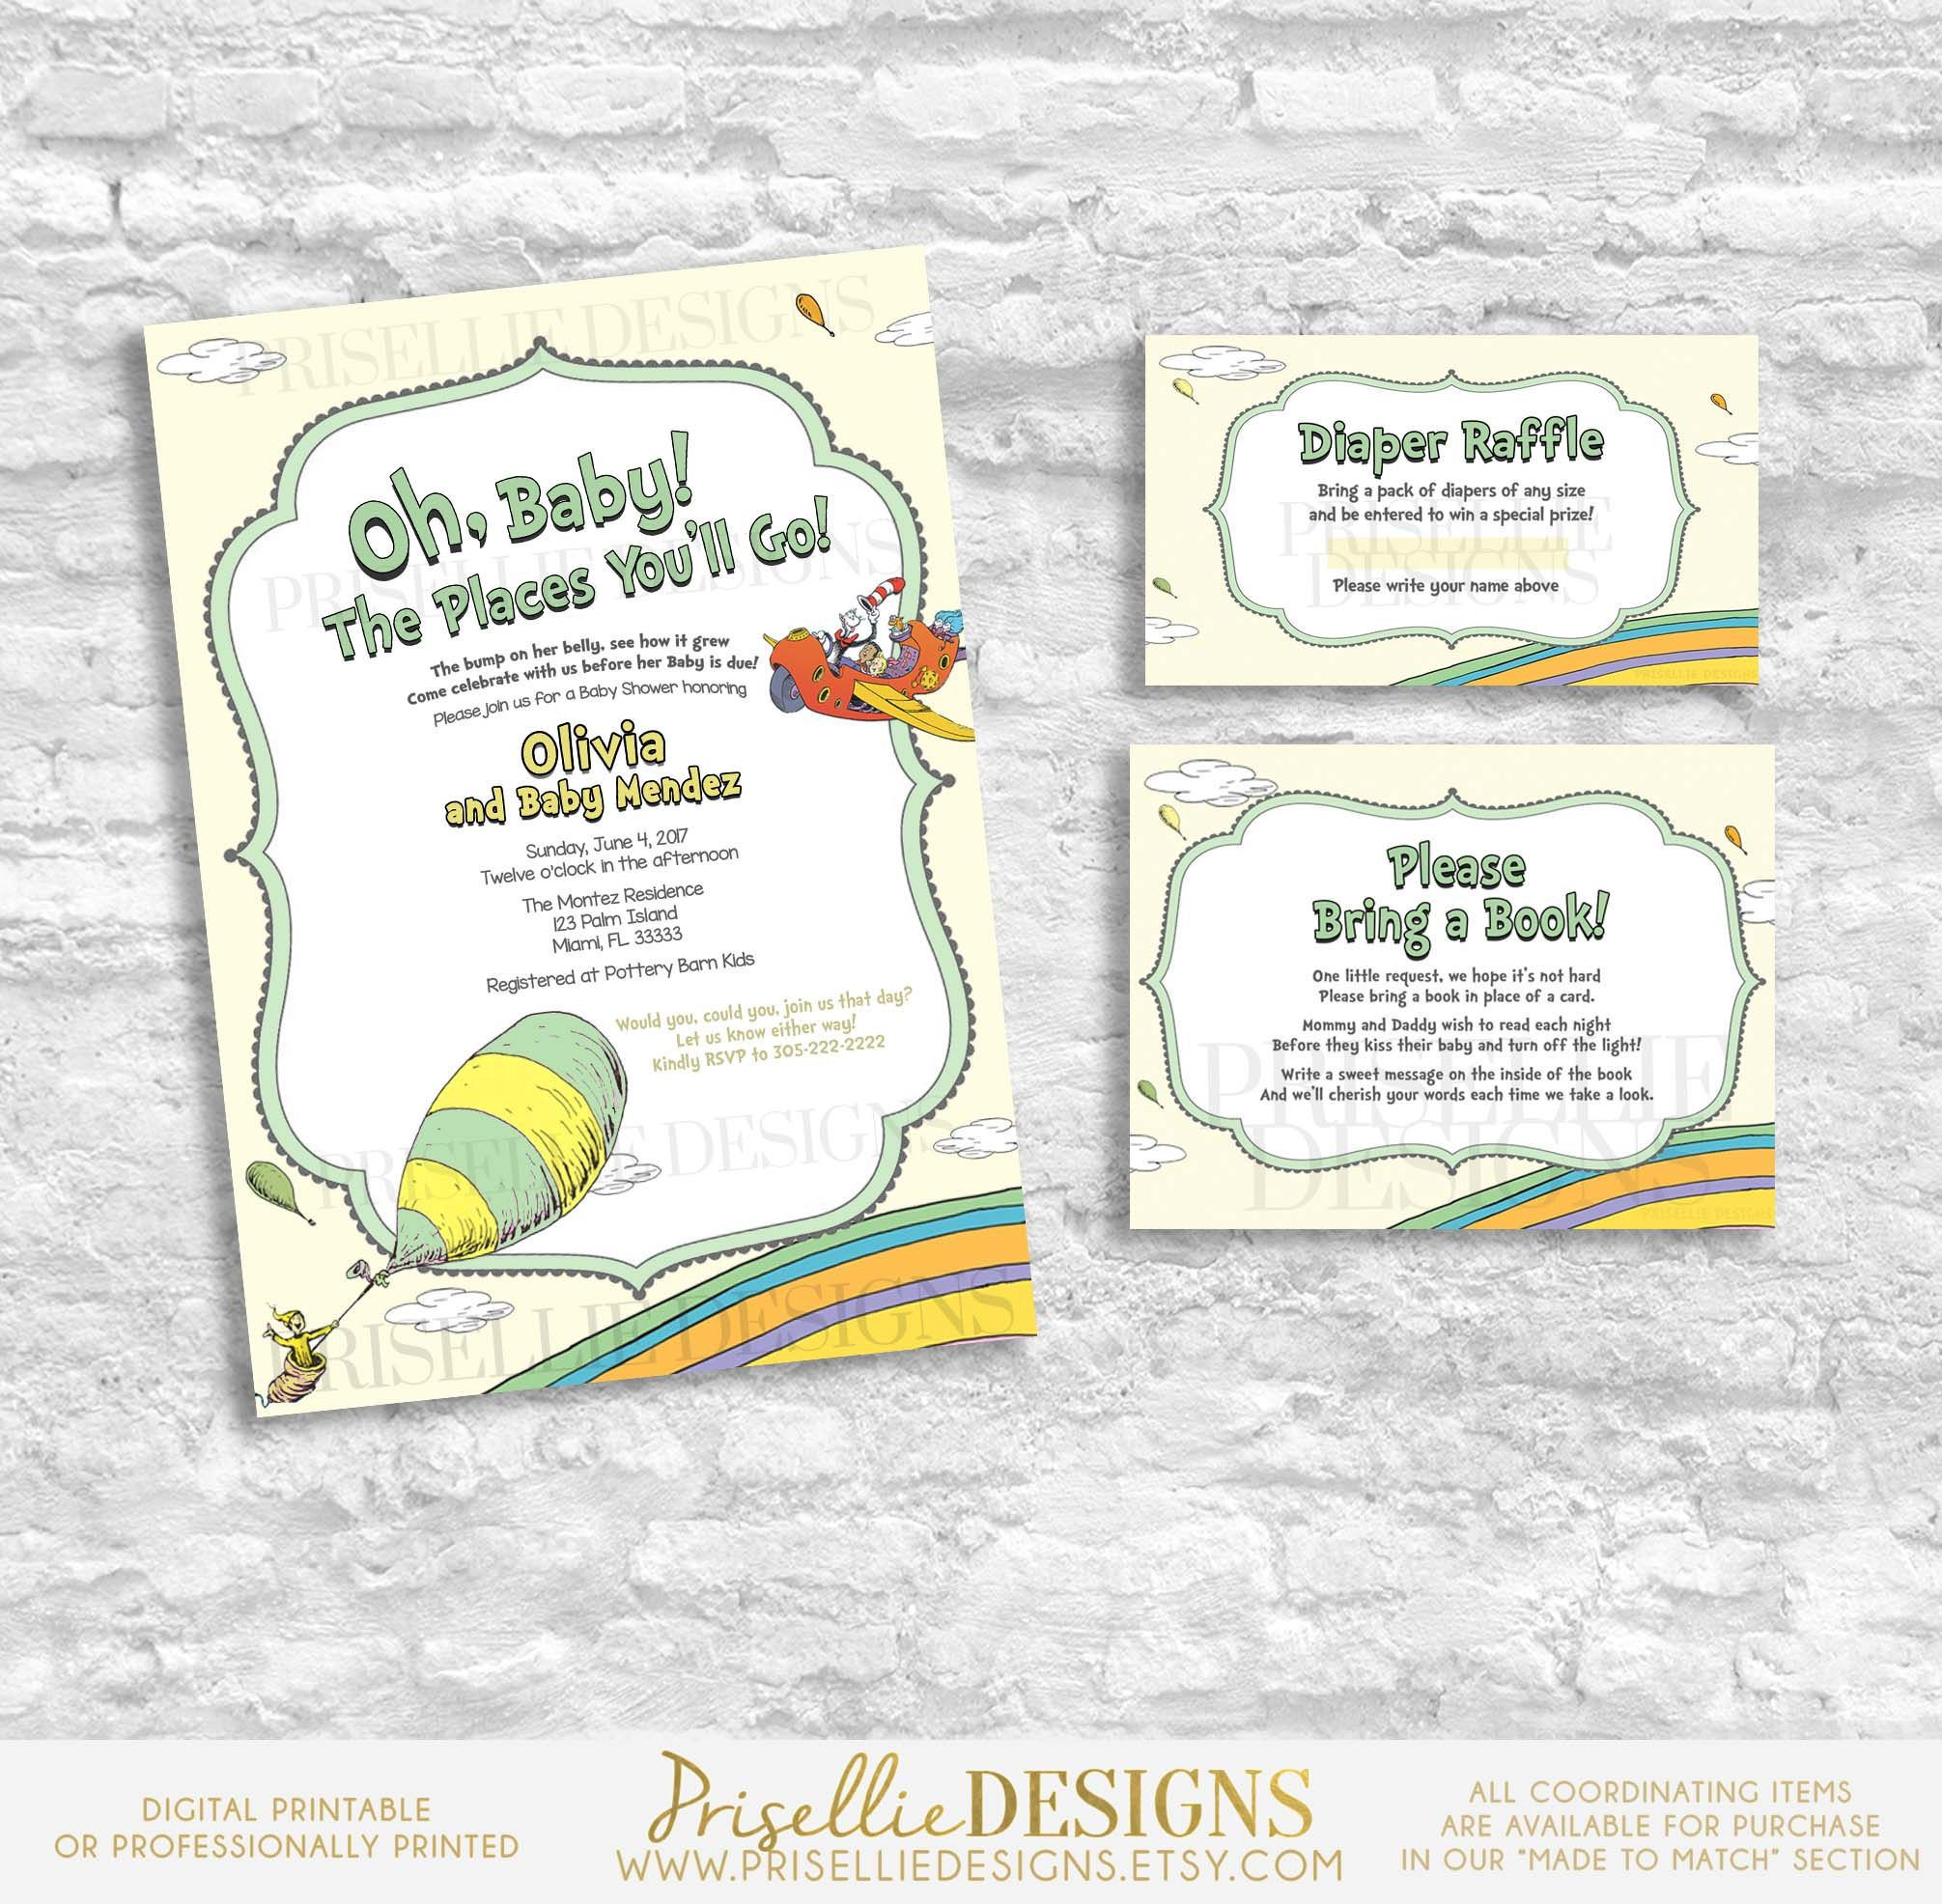 Come And Go Baby Shower new year greetings email invitations